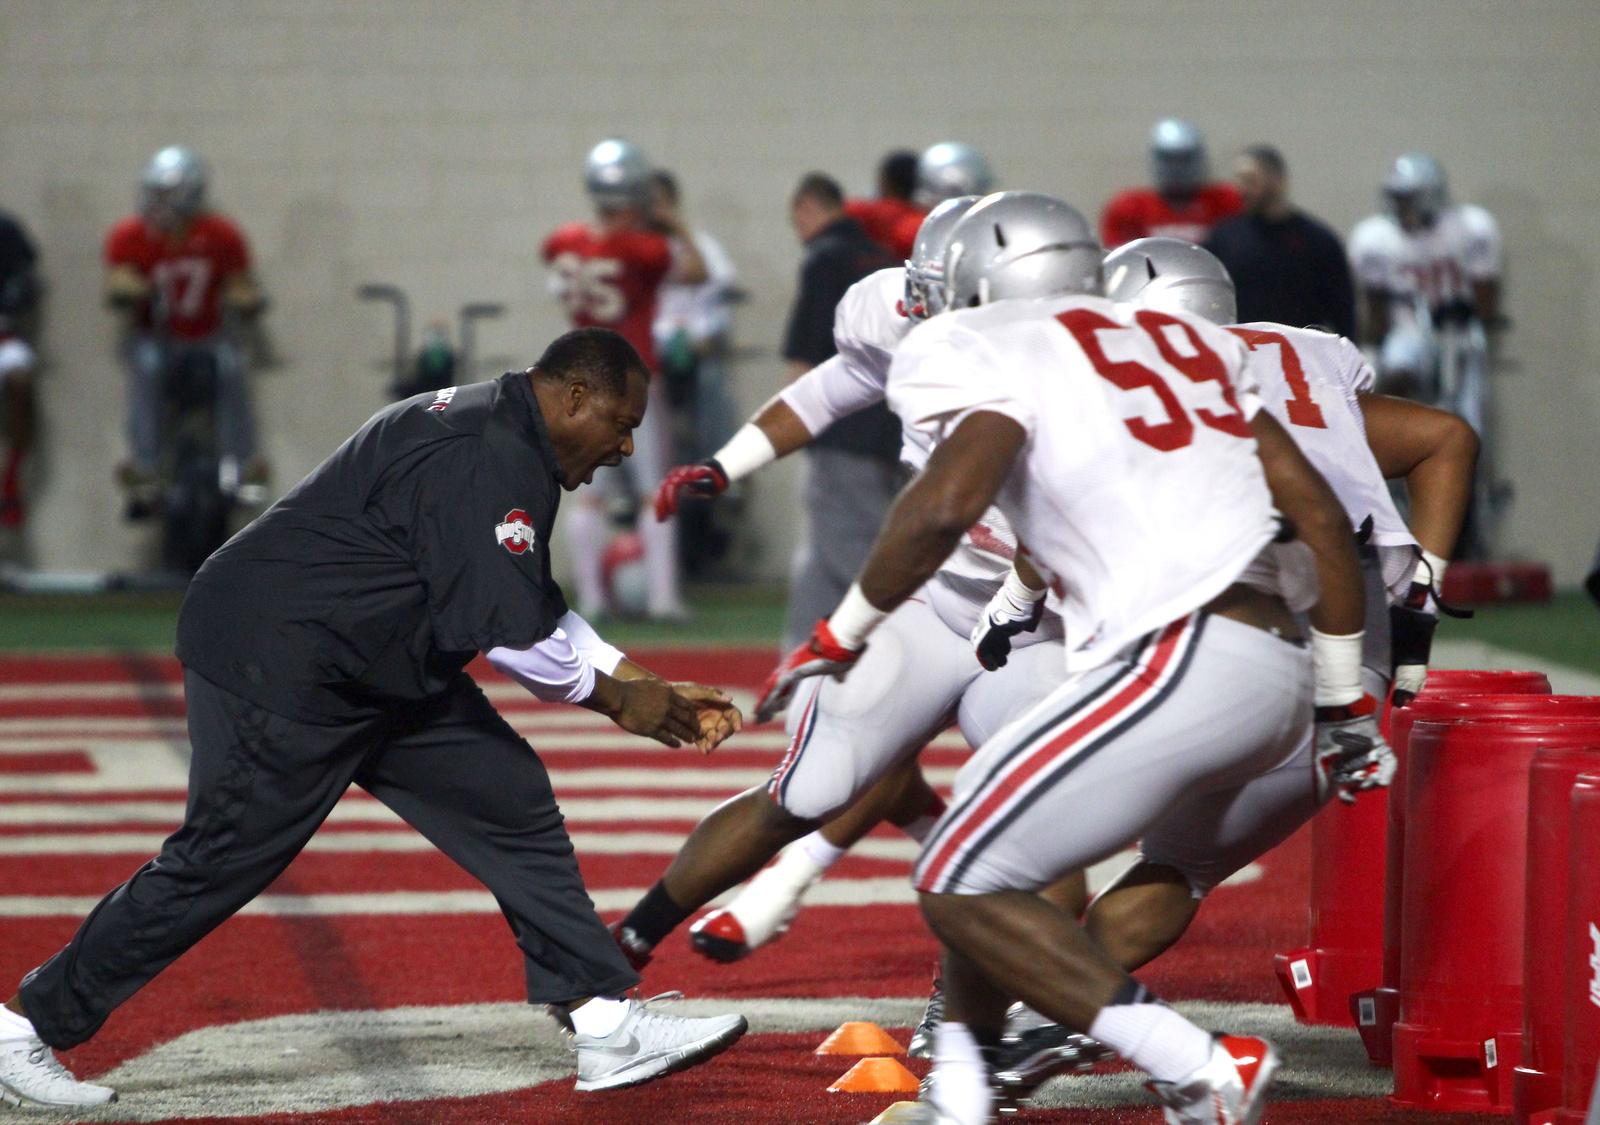 OSU defensive line coach Larry Johnson runs drills with players during spring practice March 20 at the Woody Hayes Athletic Center.